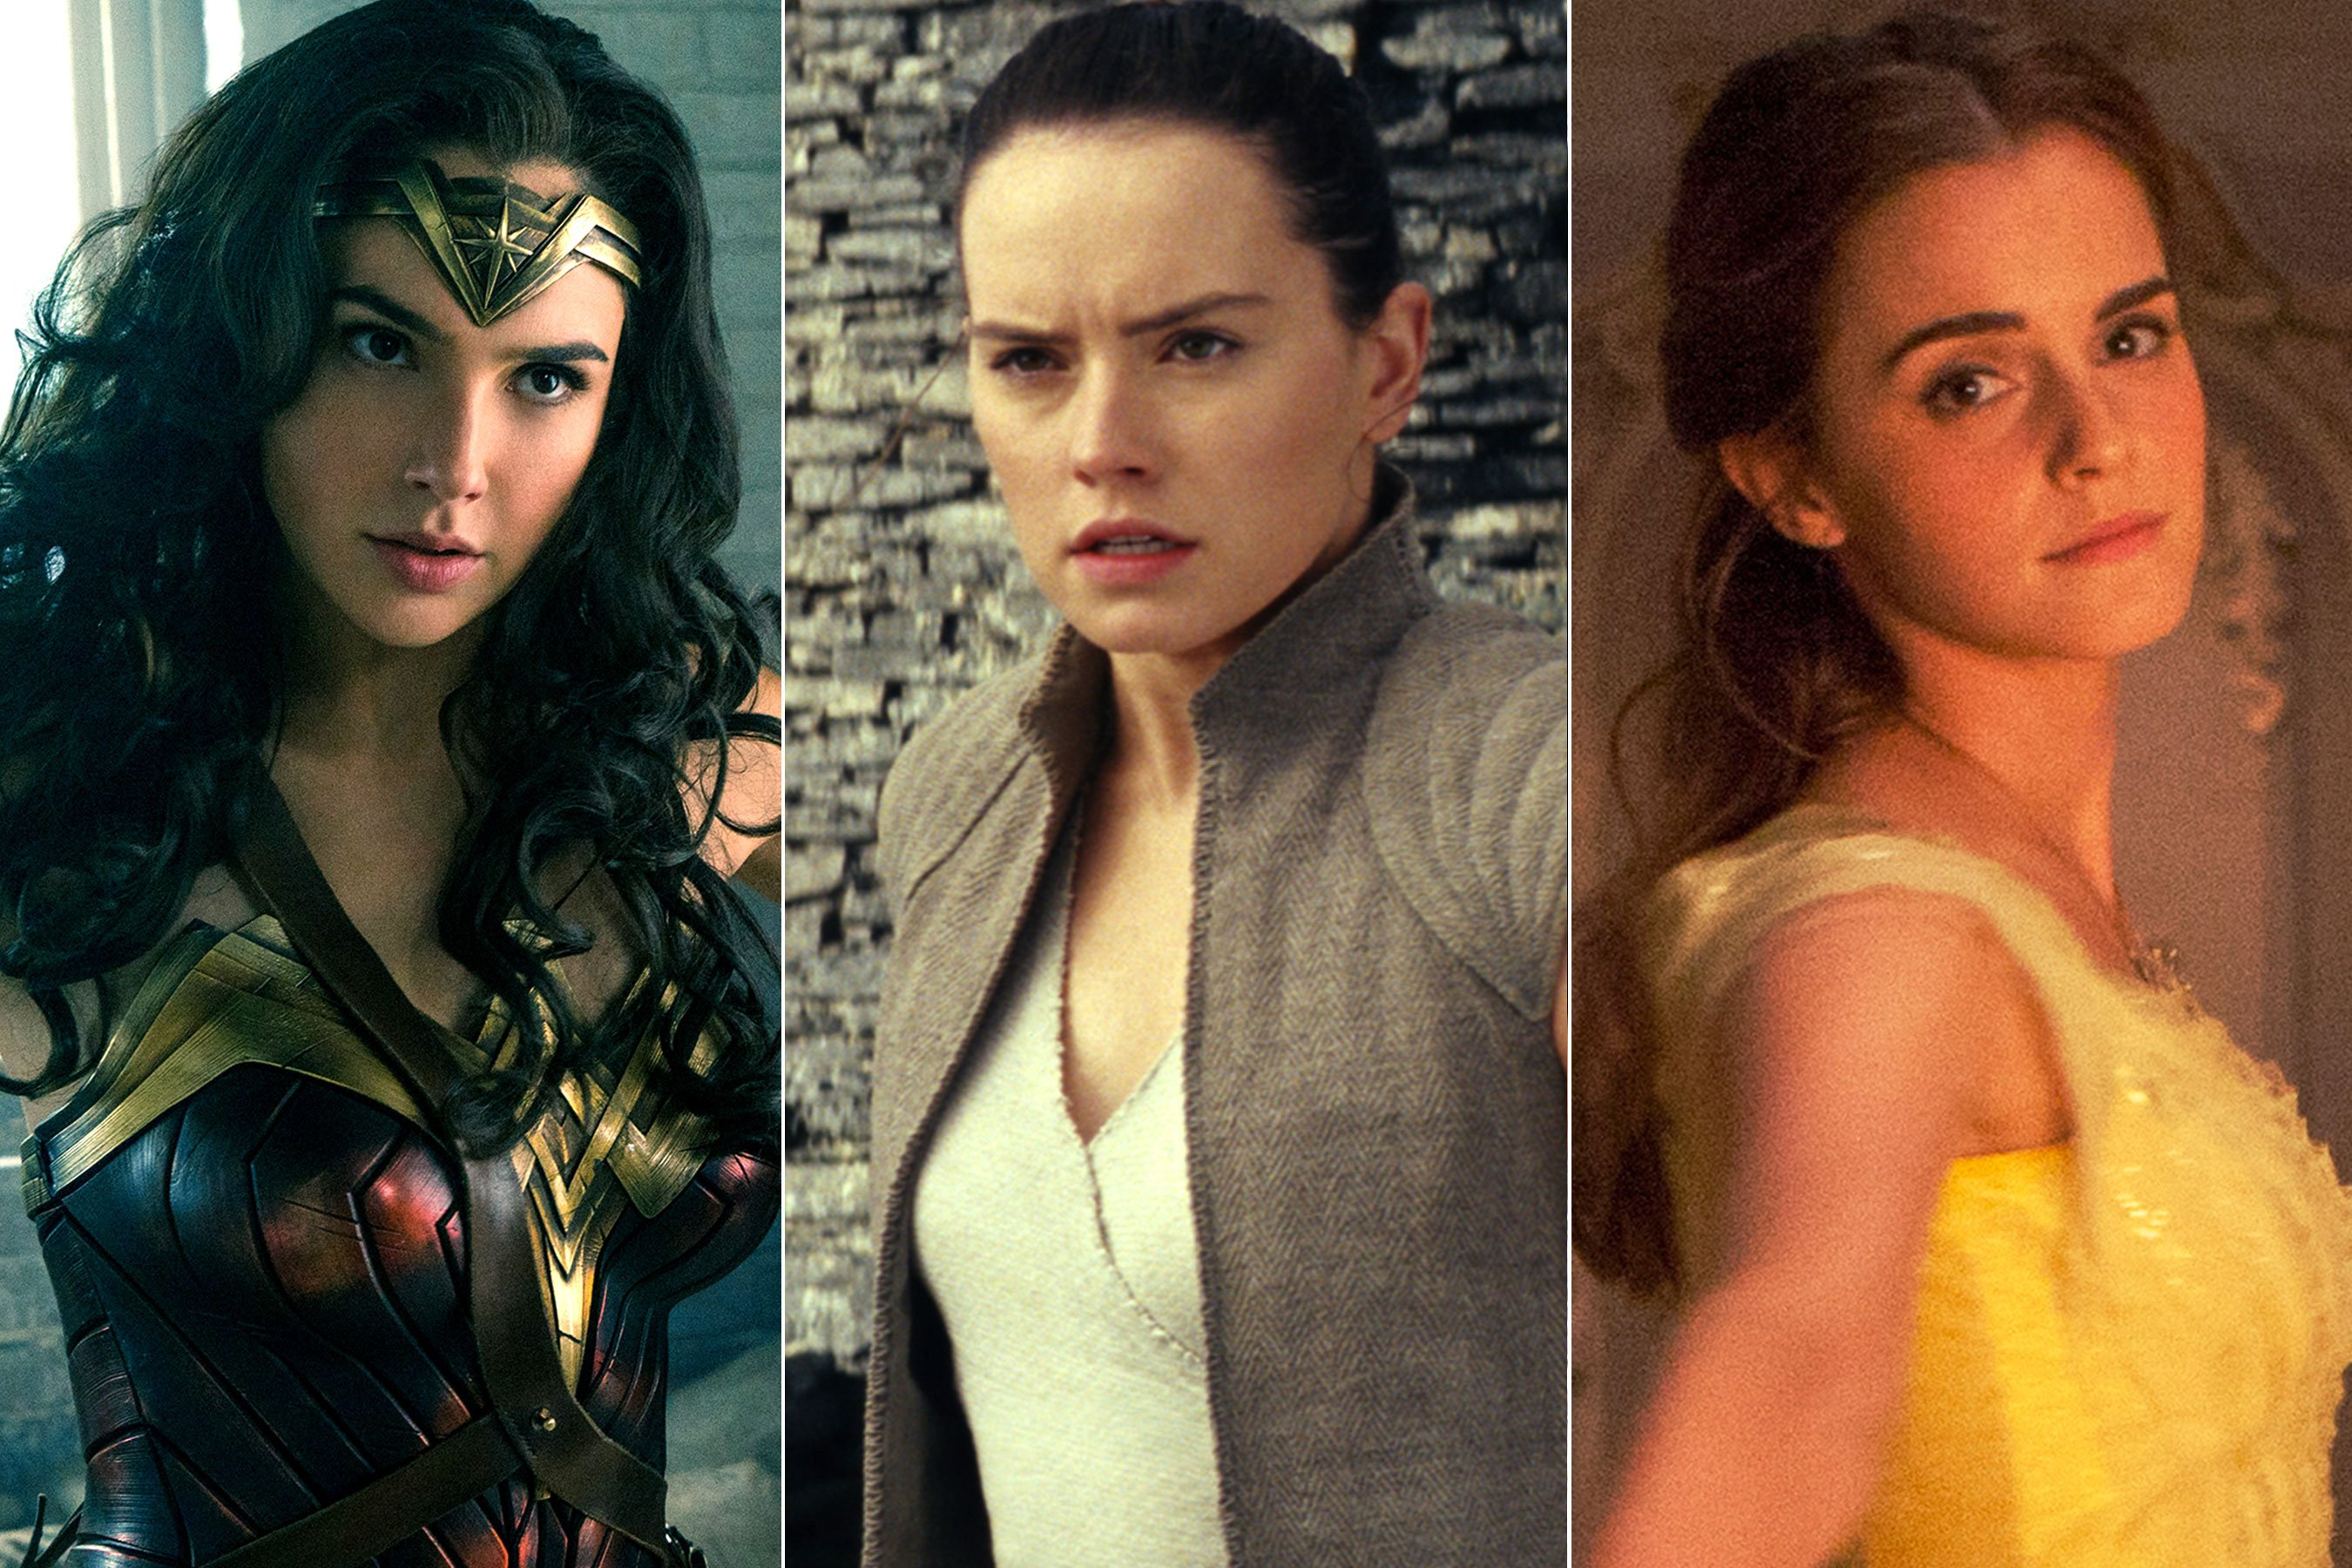 2017s top films had fewer female protagonists than 2016, study finds